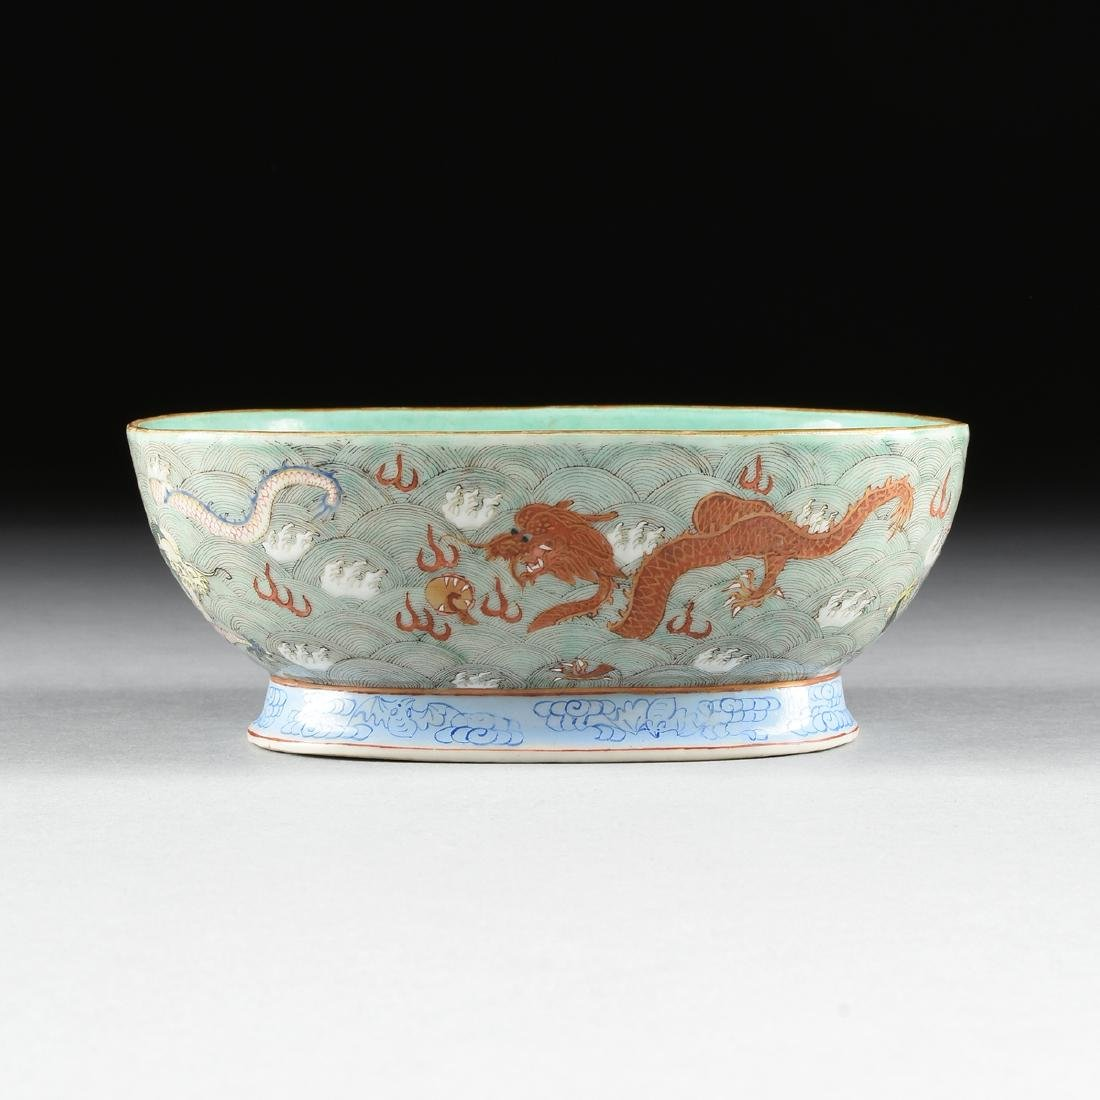 A CHINESE EXPORT PORCELAIN OVAL FOOTED BOWL, REPUBLIC - 6